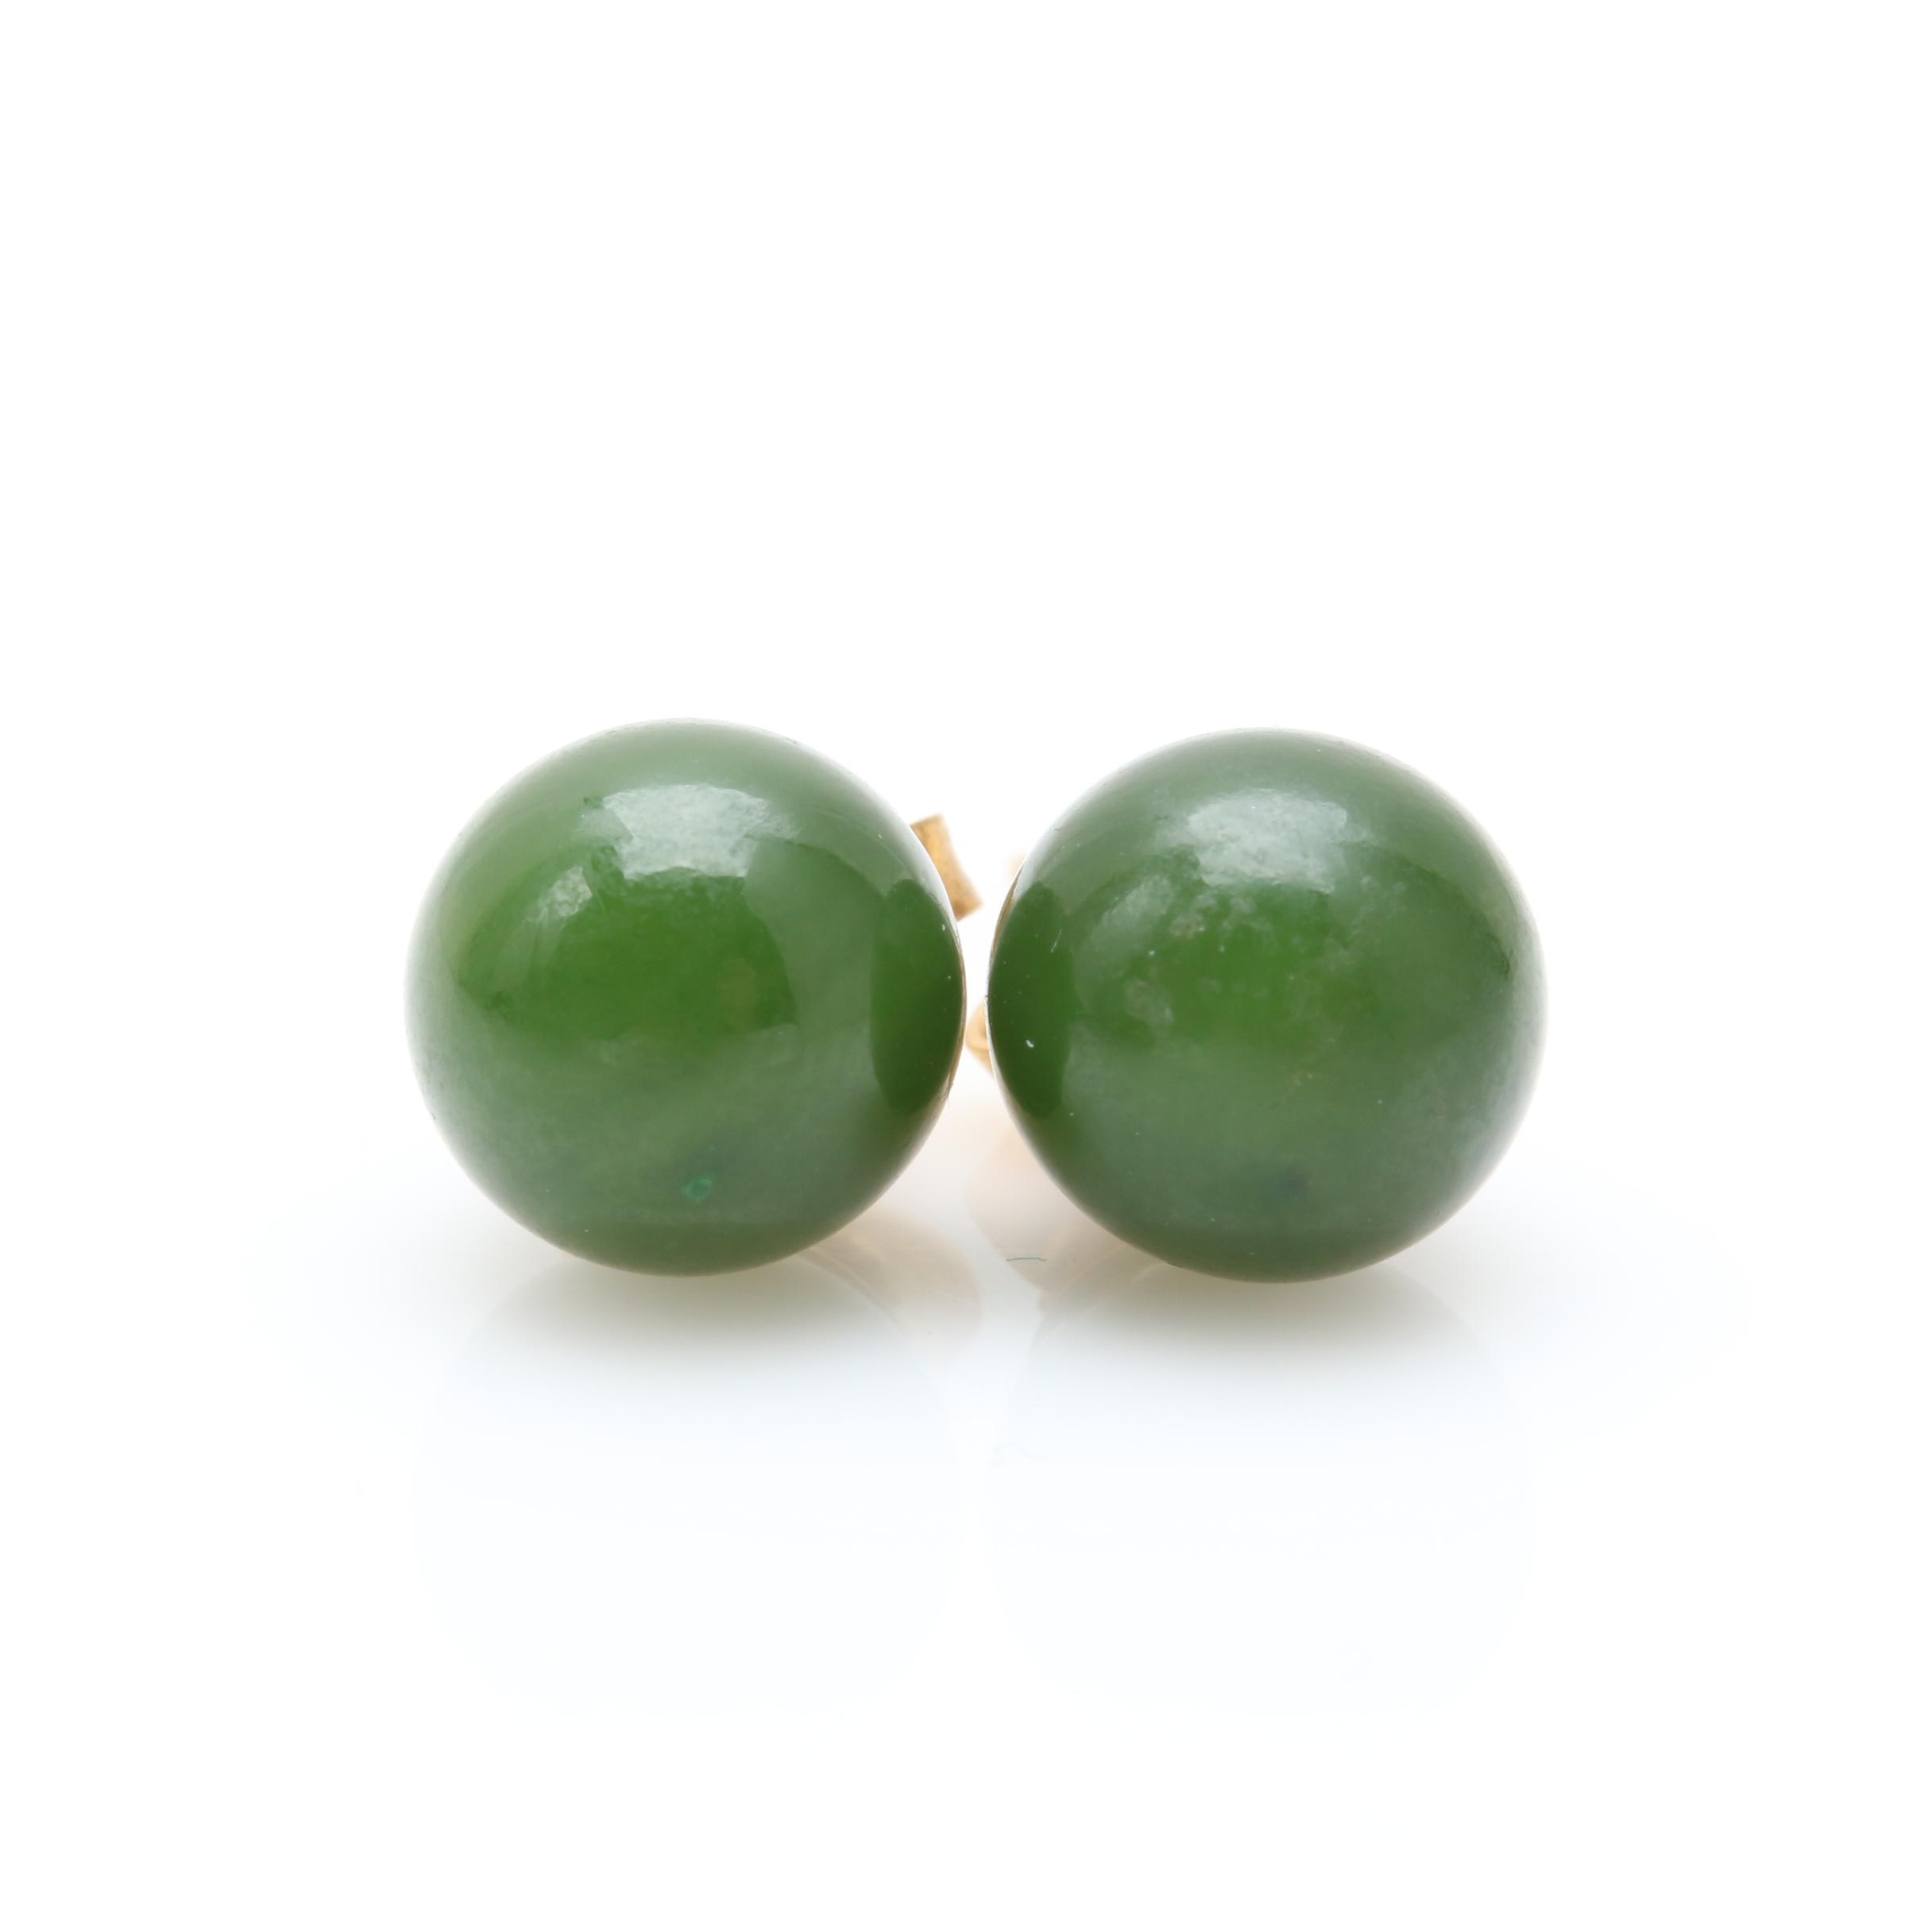 14K Yellow Gold Nephrite Earrings